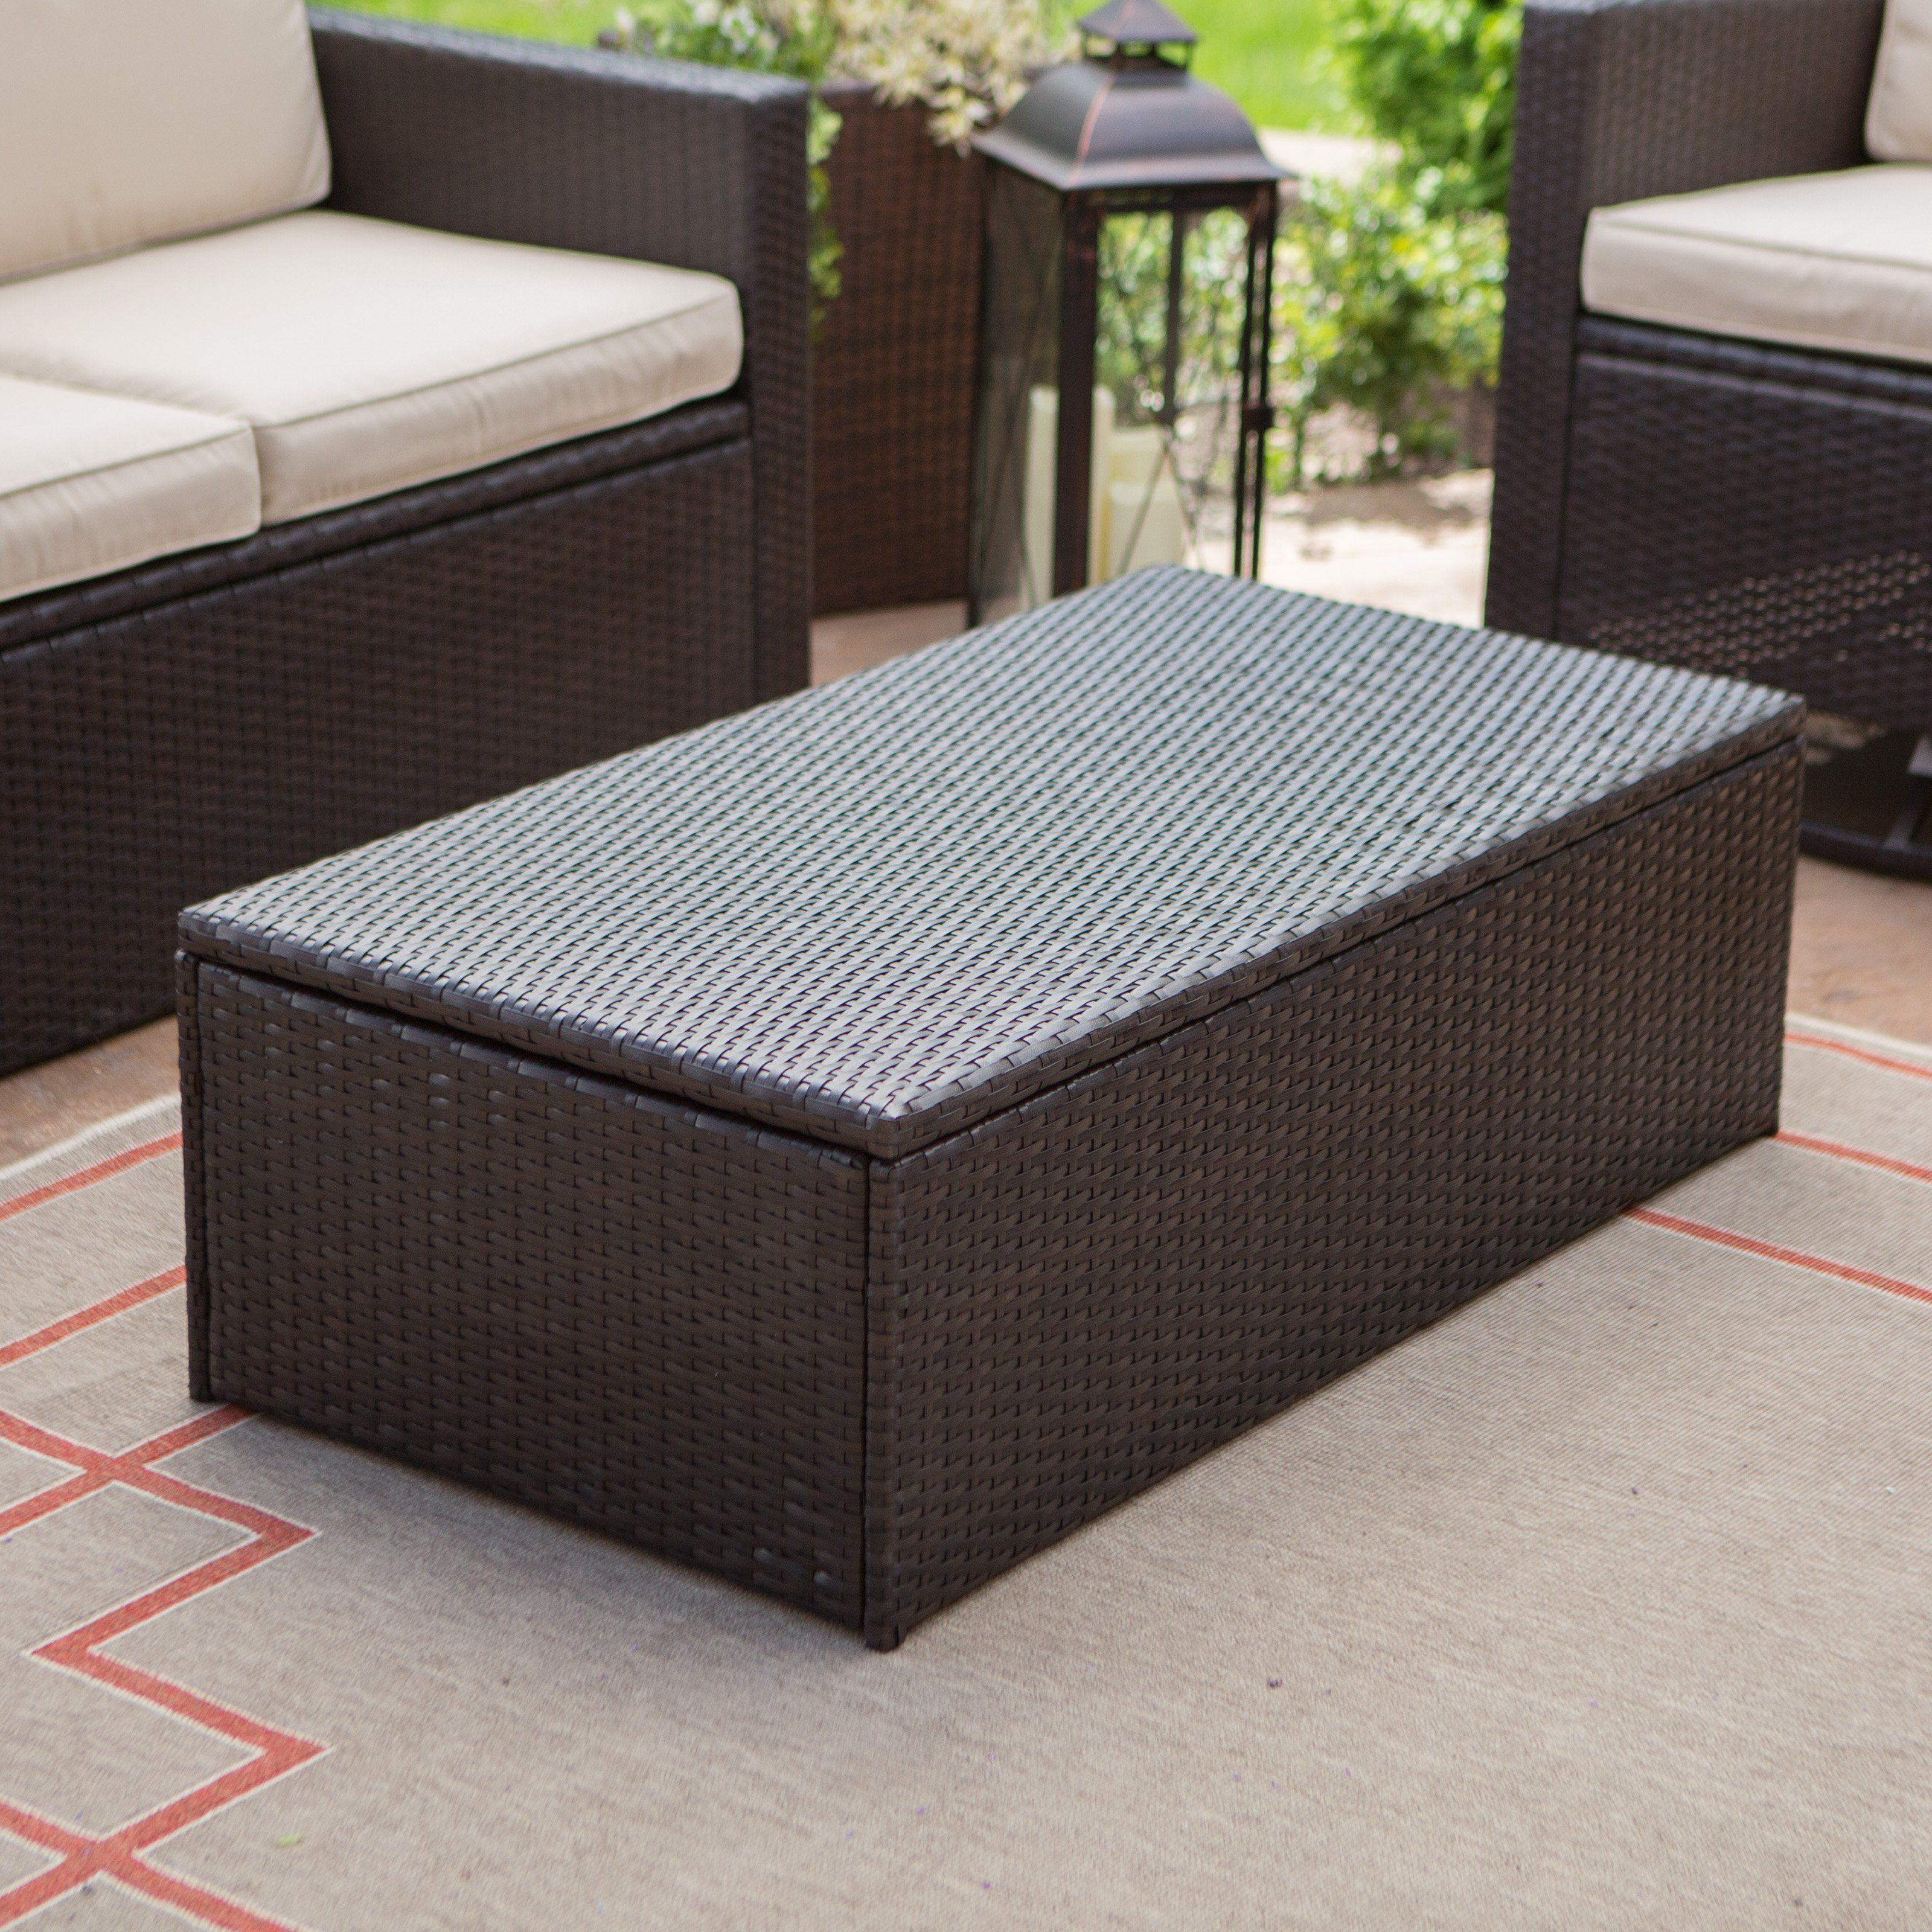 coral coast berea outdoor wicker storage coffee table deck side from end tables with drawers wooden patio chairs luxury furniture floor transitions for uneven floors accent small